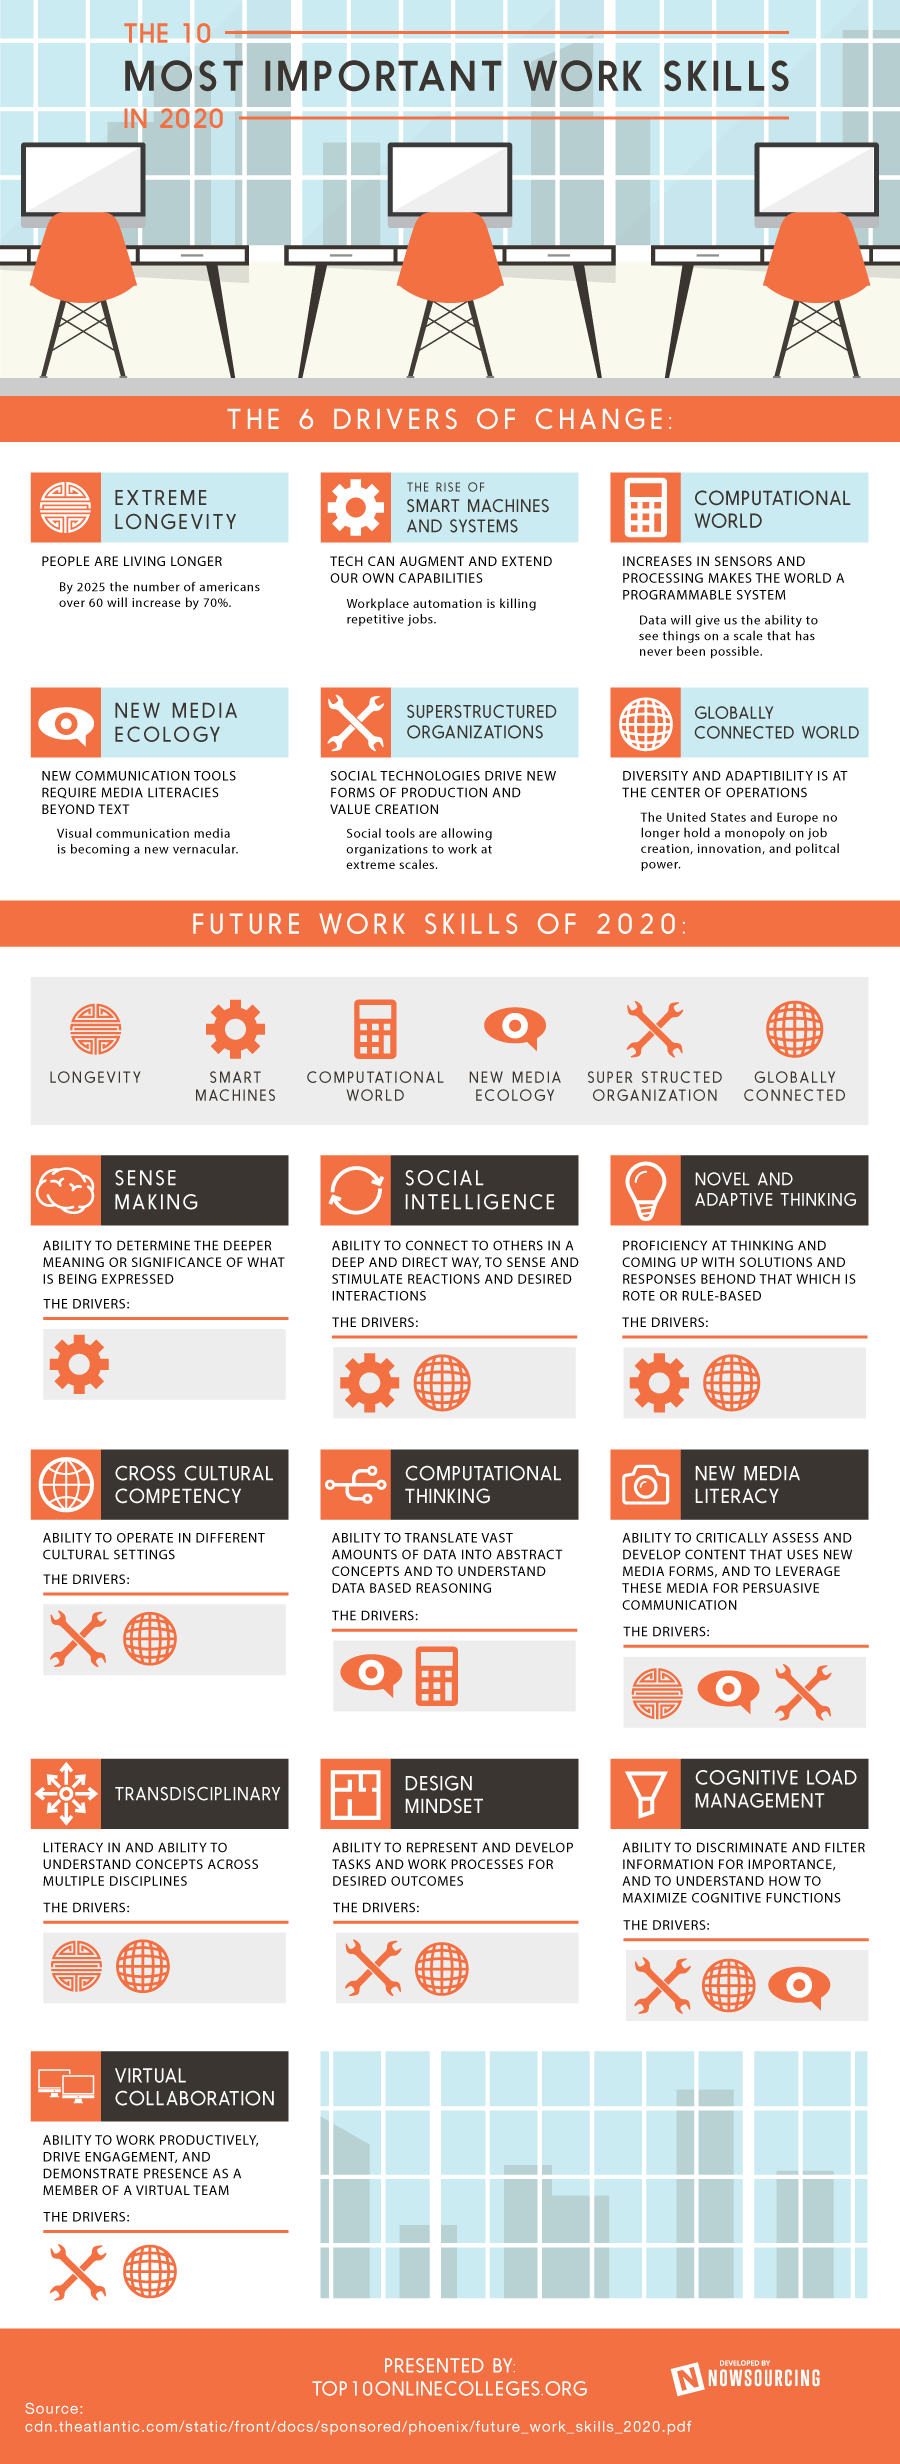 Best Jobs 2020 Without A Degree Top Skills for Job Seekers to Master by 2020